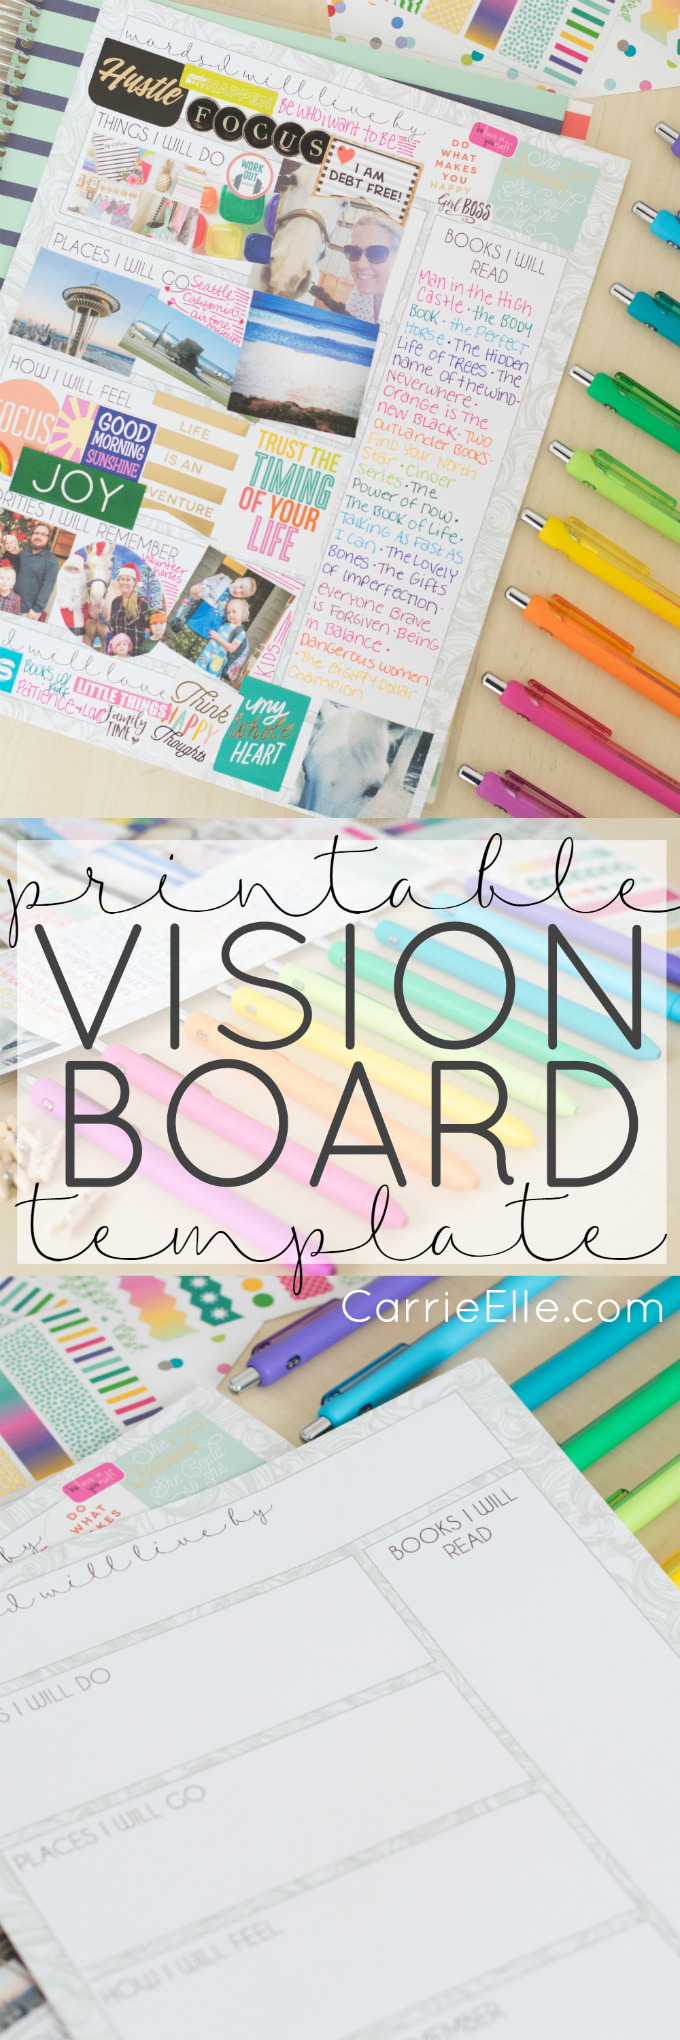 Printable vision board template carrie elle for Home design vision board